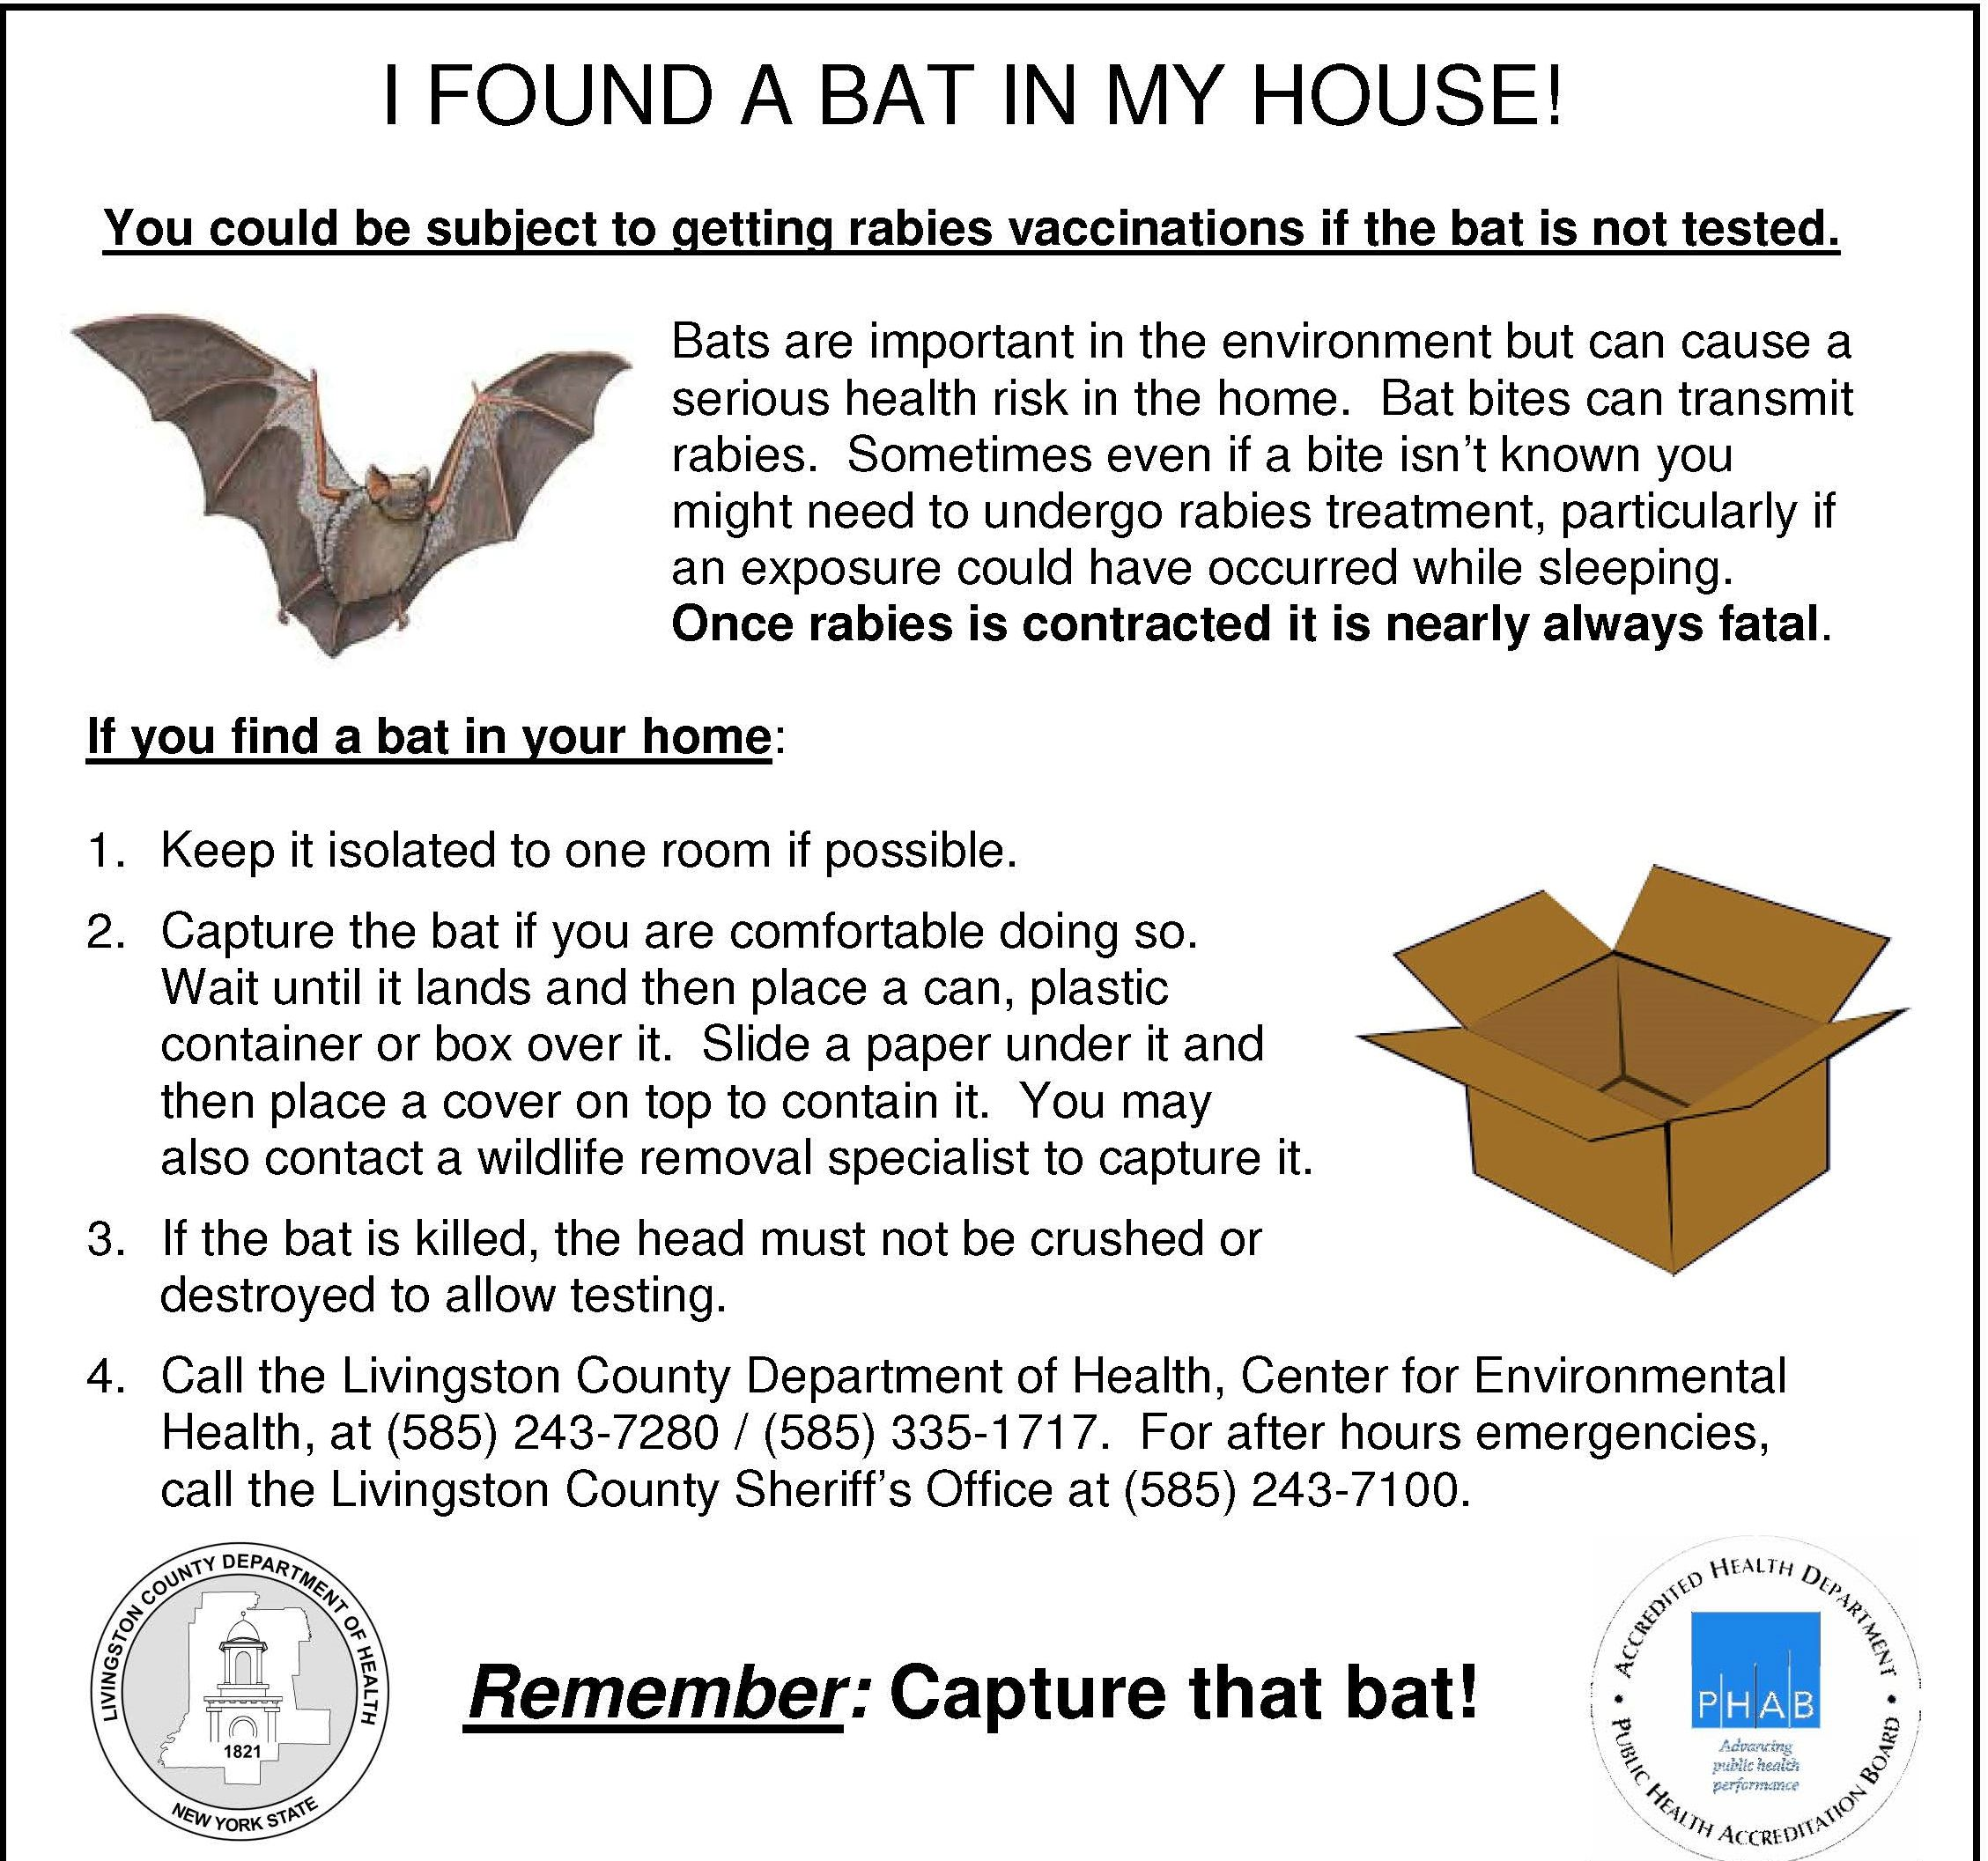 A bat ad regarding what to do if you have a bat in your house.